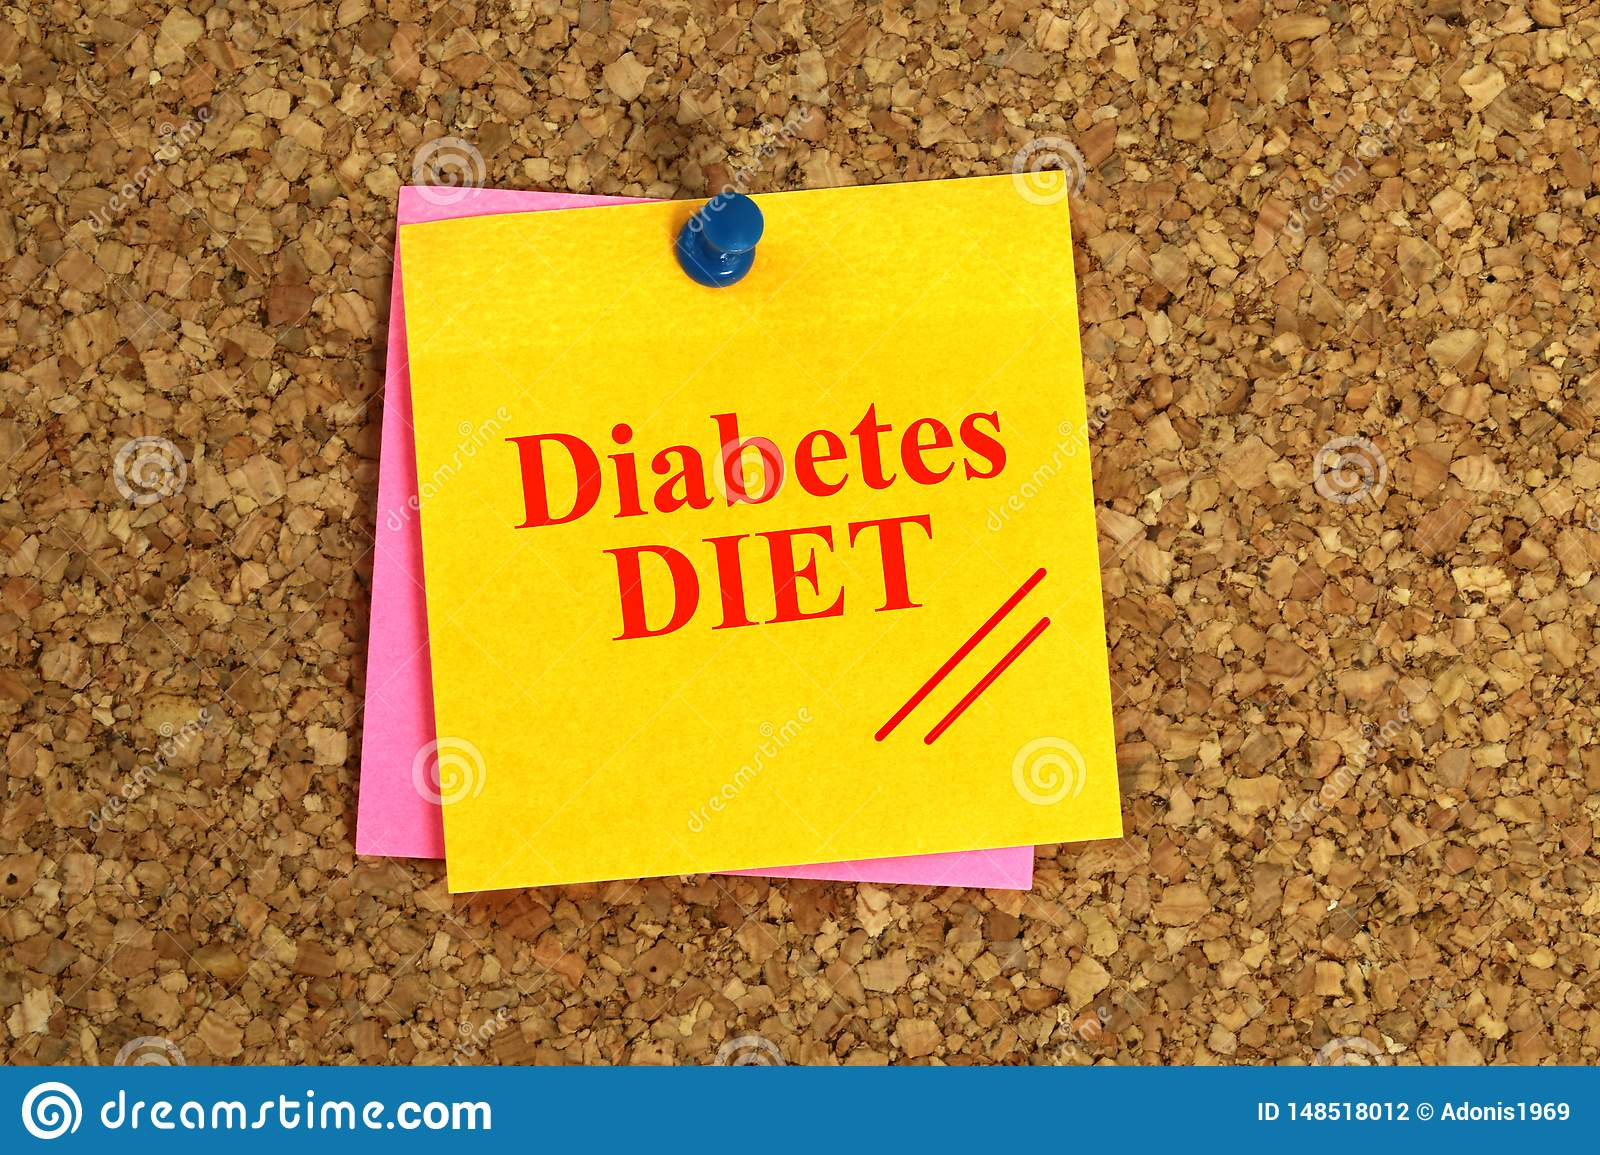 Diabetes DIET Written On Yellow Note With Push Pin On Cork Board